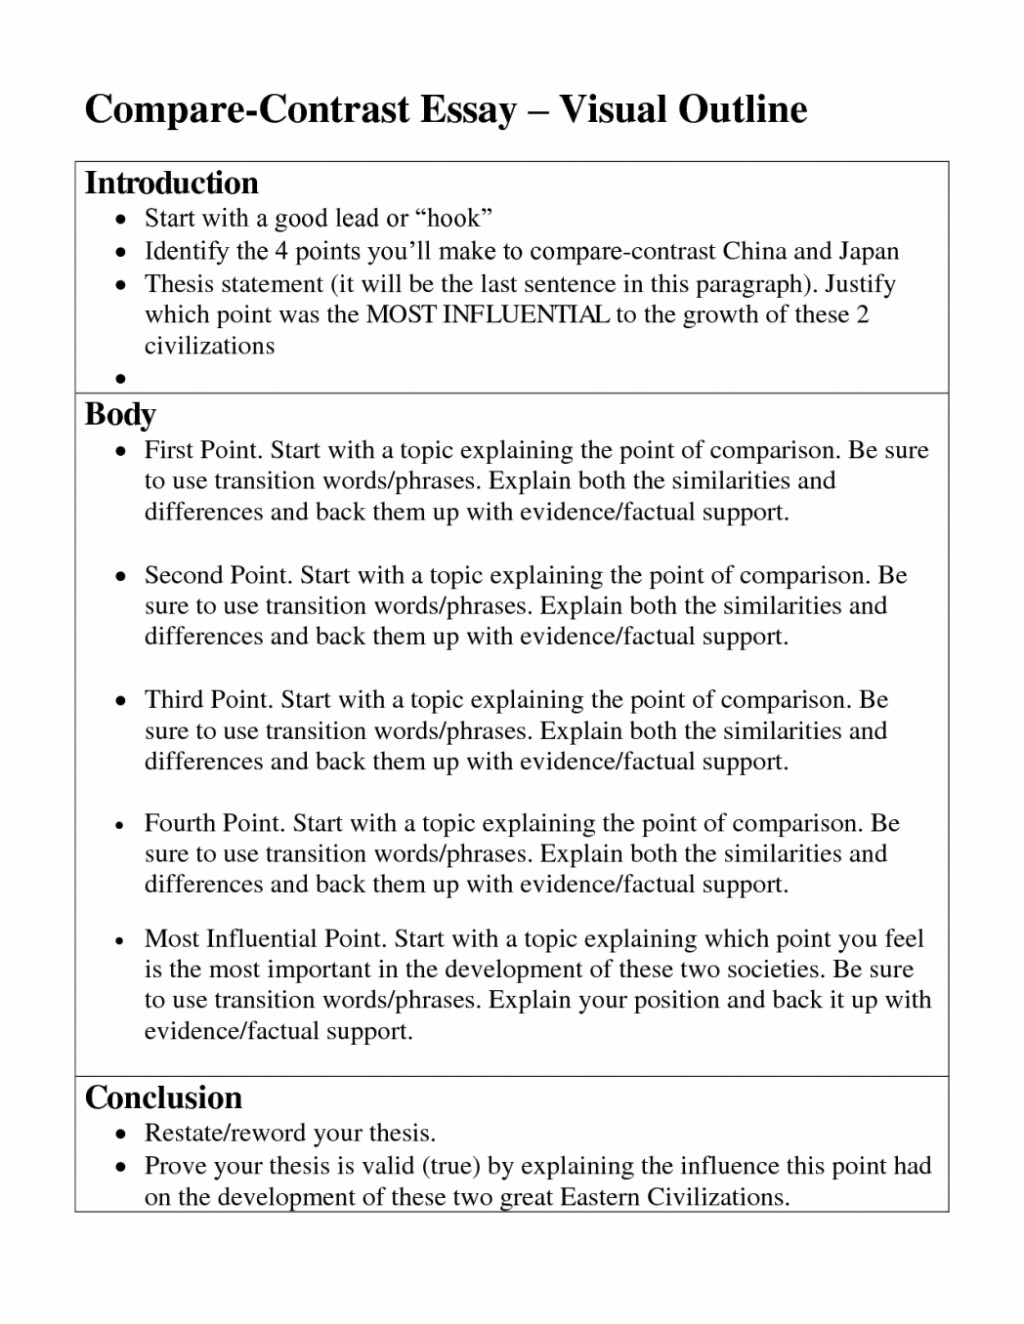 003 Essay Example Compare And Contrast Topics For College Students High School English Pdf Research Paper Beautiful Large